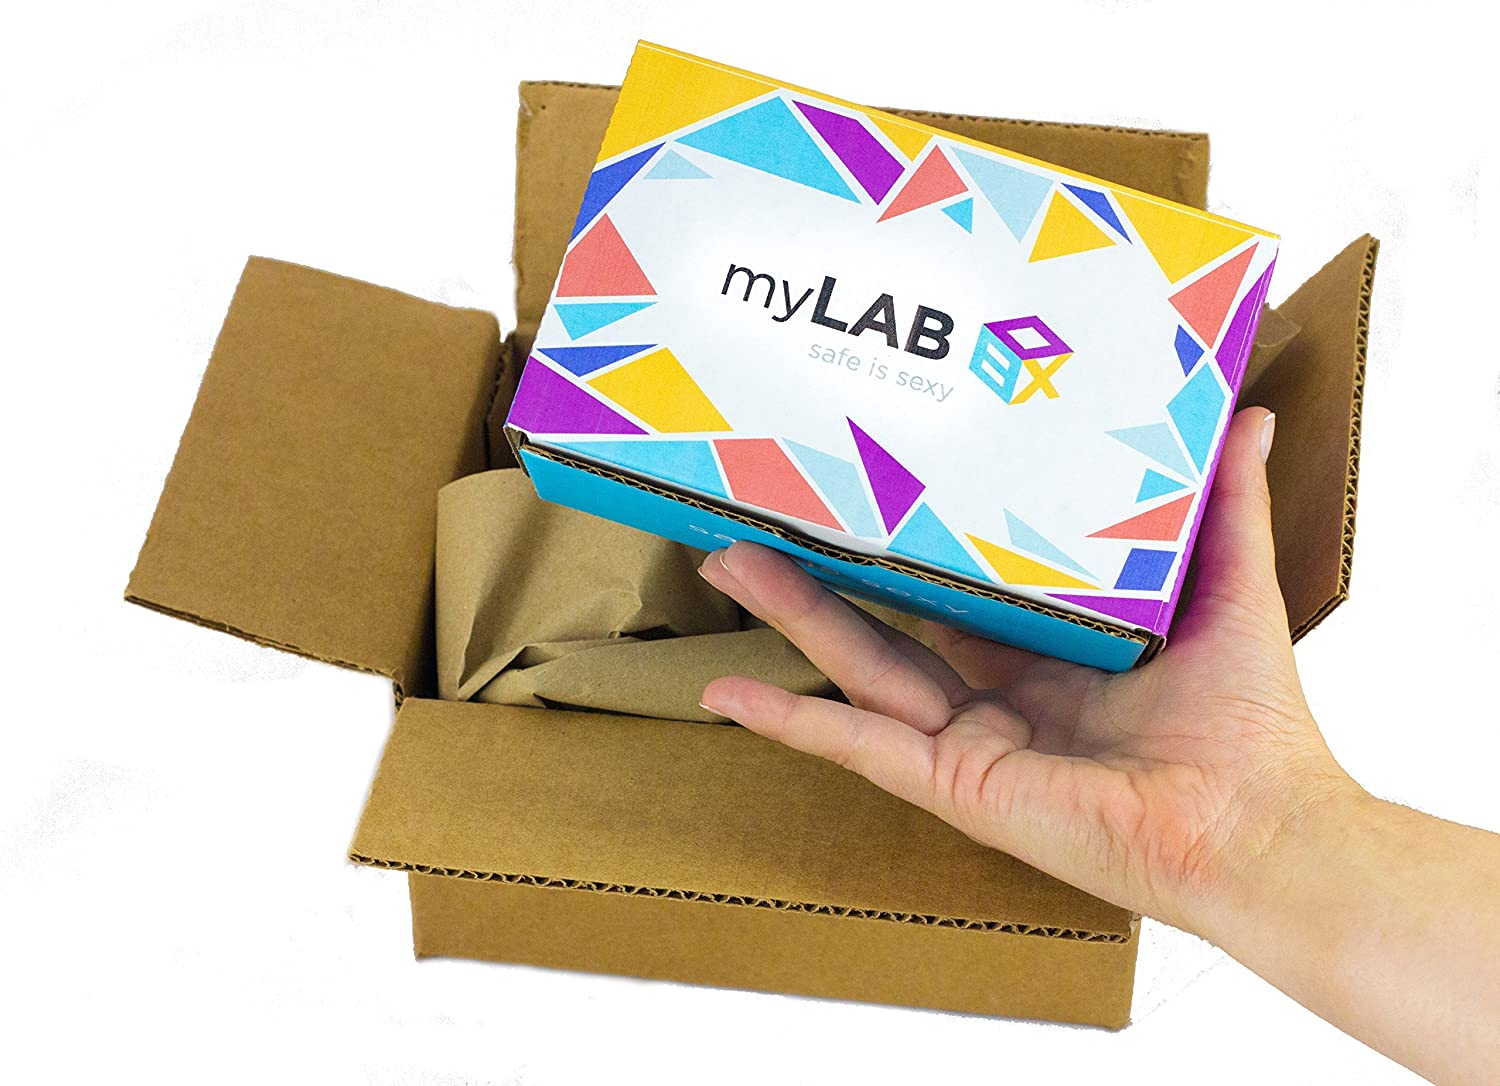 Buy myLAB Box at Home STD Test For Men Discreet Mail In Kit Lab Certified  Results In 3-5 Days (Trichomonass), 12601 Online at Low Prices in India -  Amazon.in